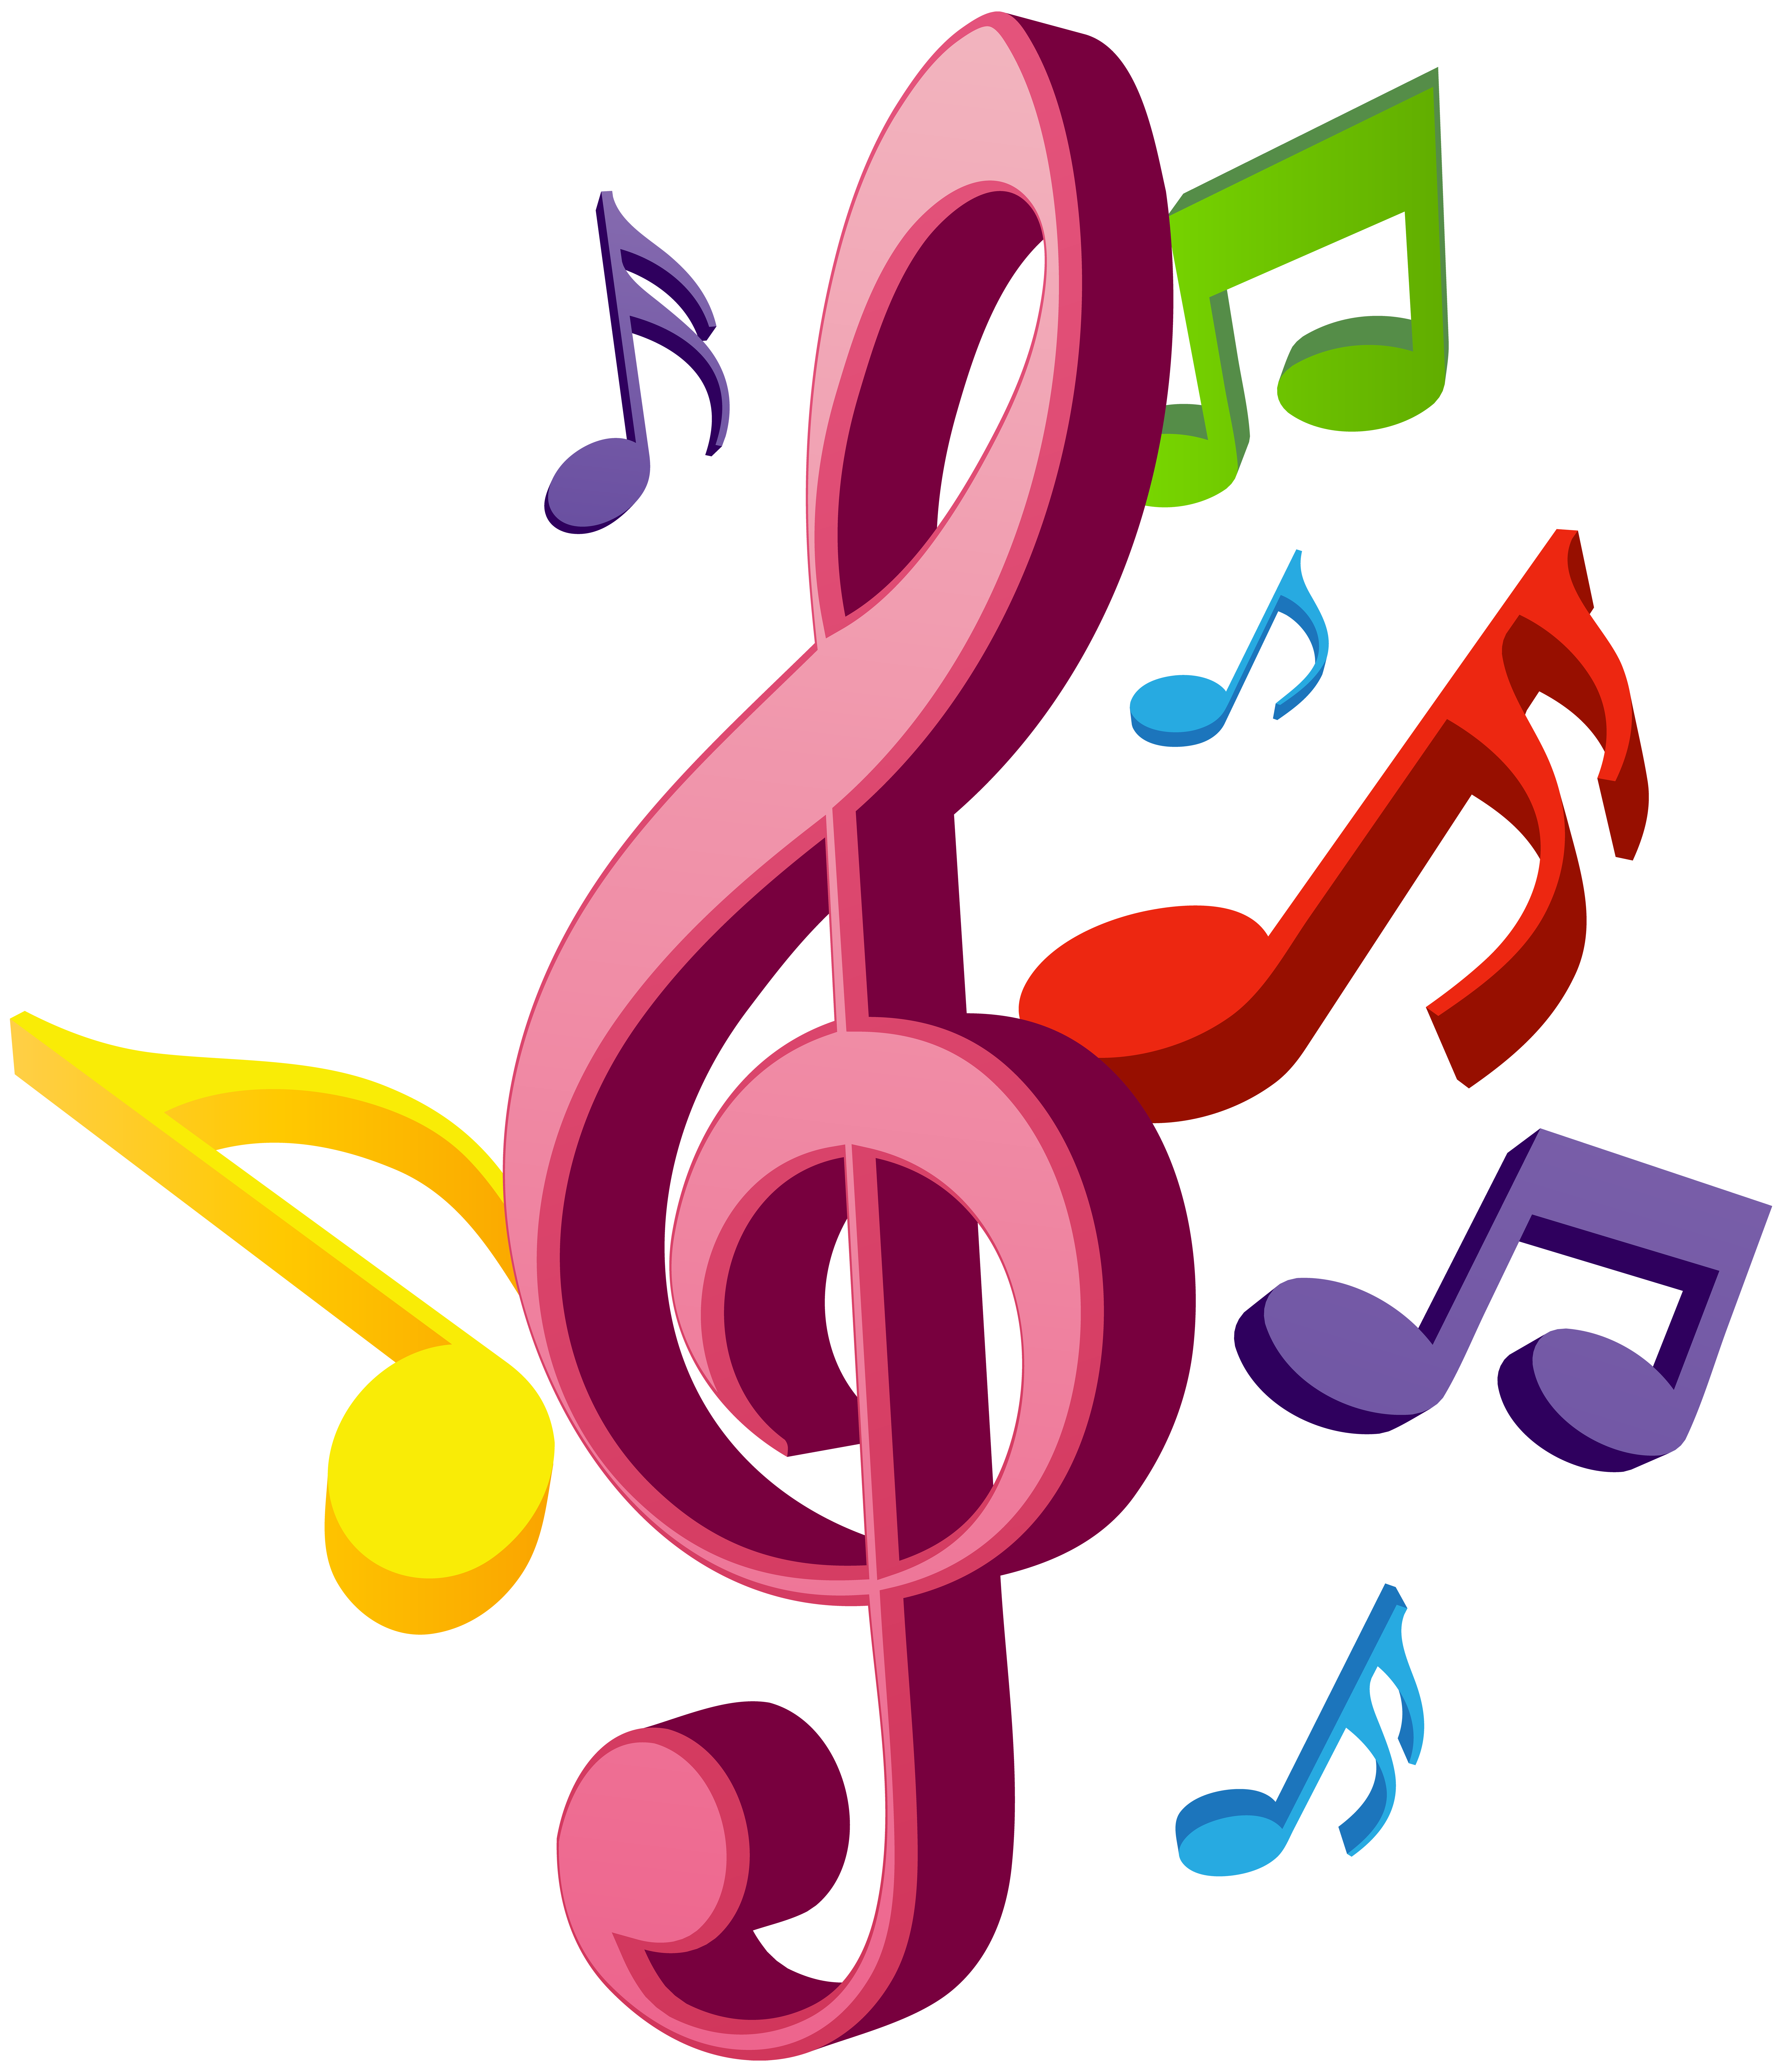 Musical heart clipart picture freeuse download Music Notes PNG Clip Art | Gallery Yopriceville - High-Quality ... picture freeuse download